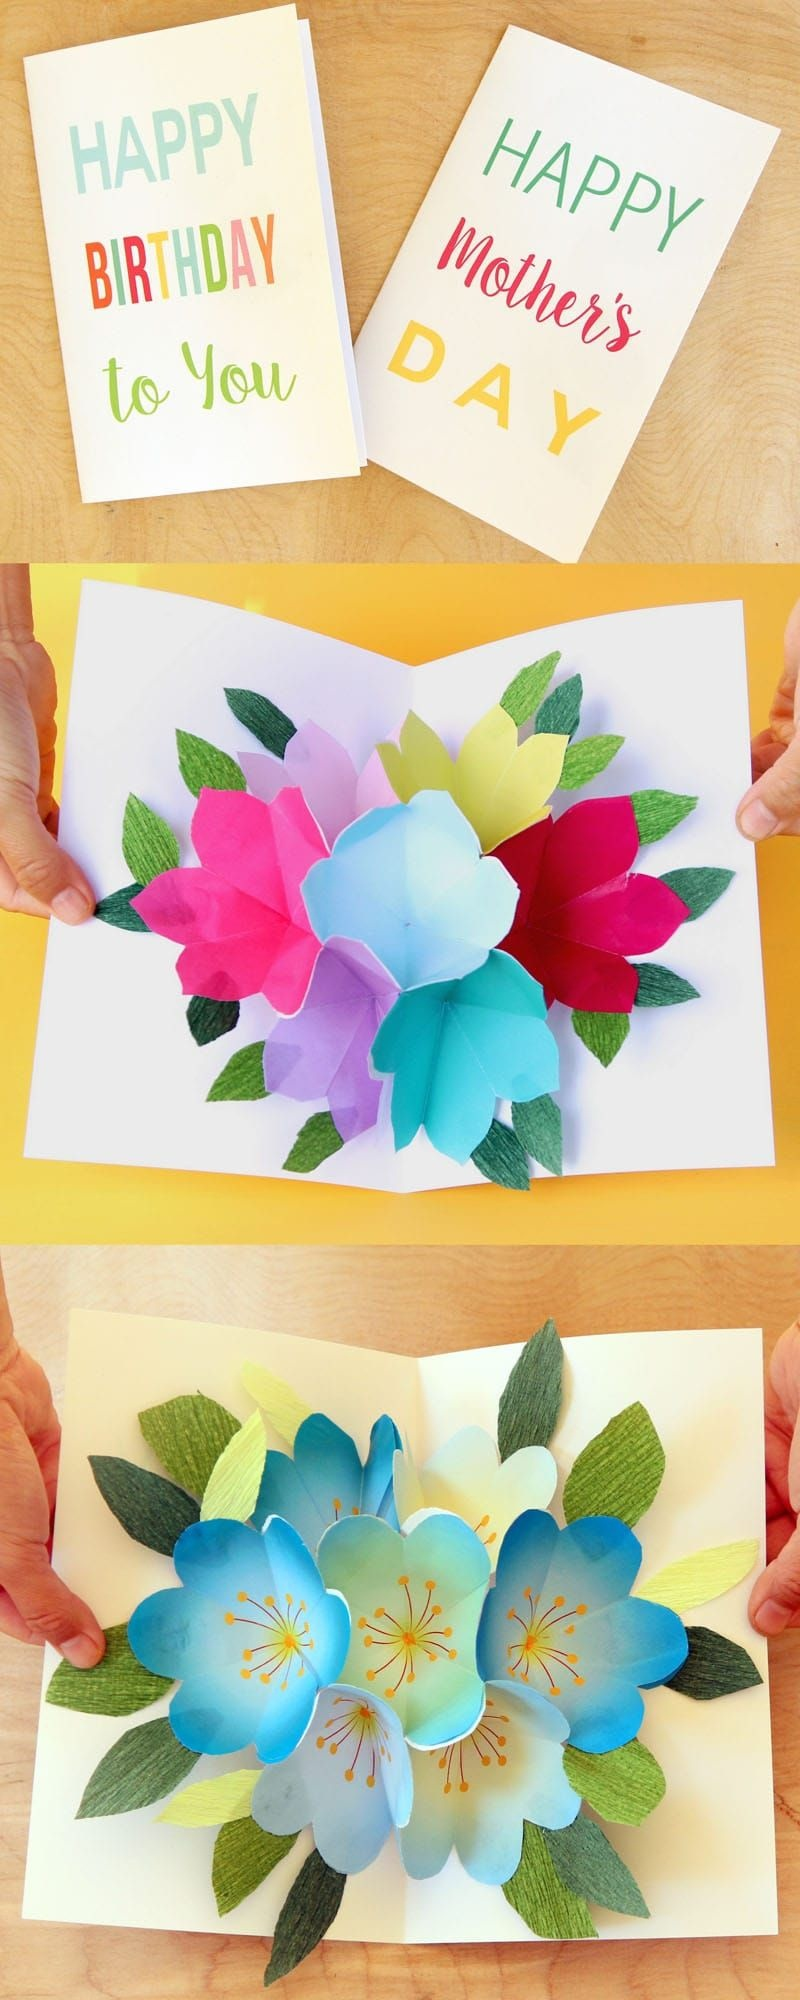 Free Printable Happy Birthday Card With Pop Up Bouquet | Printables - Free Printable Birthday Cards For Her